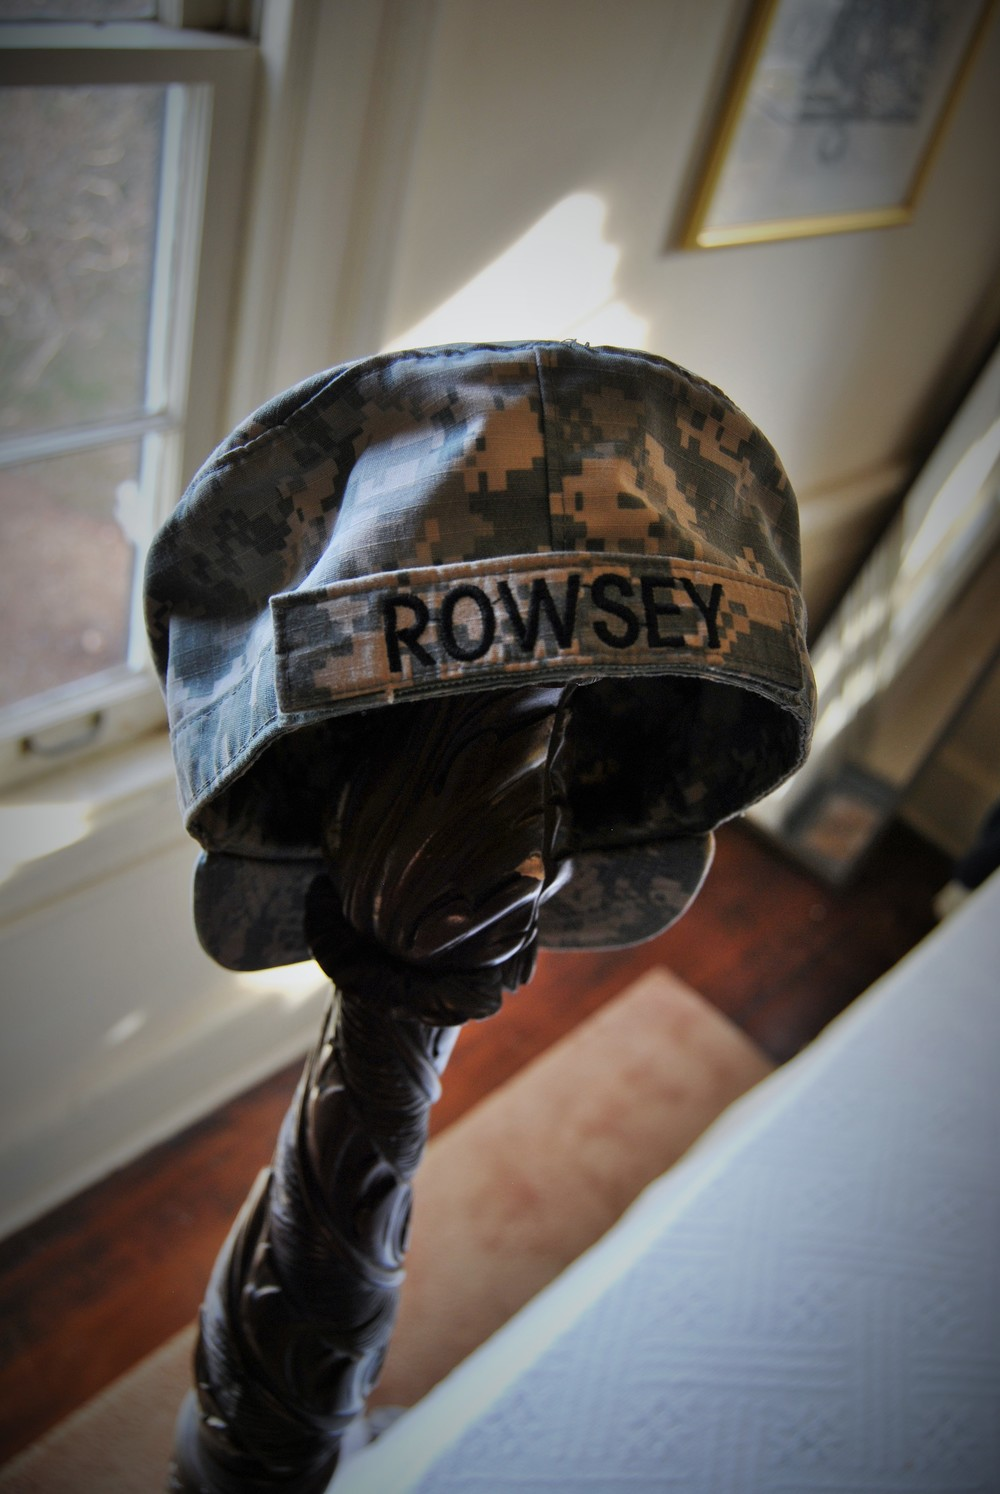 Rowsey-wedding-military-hat.jpg